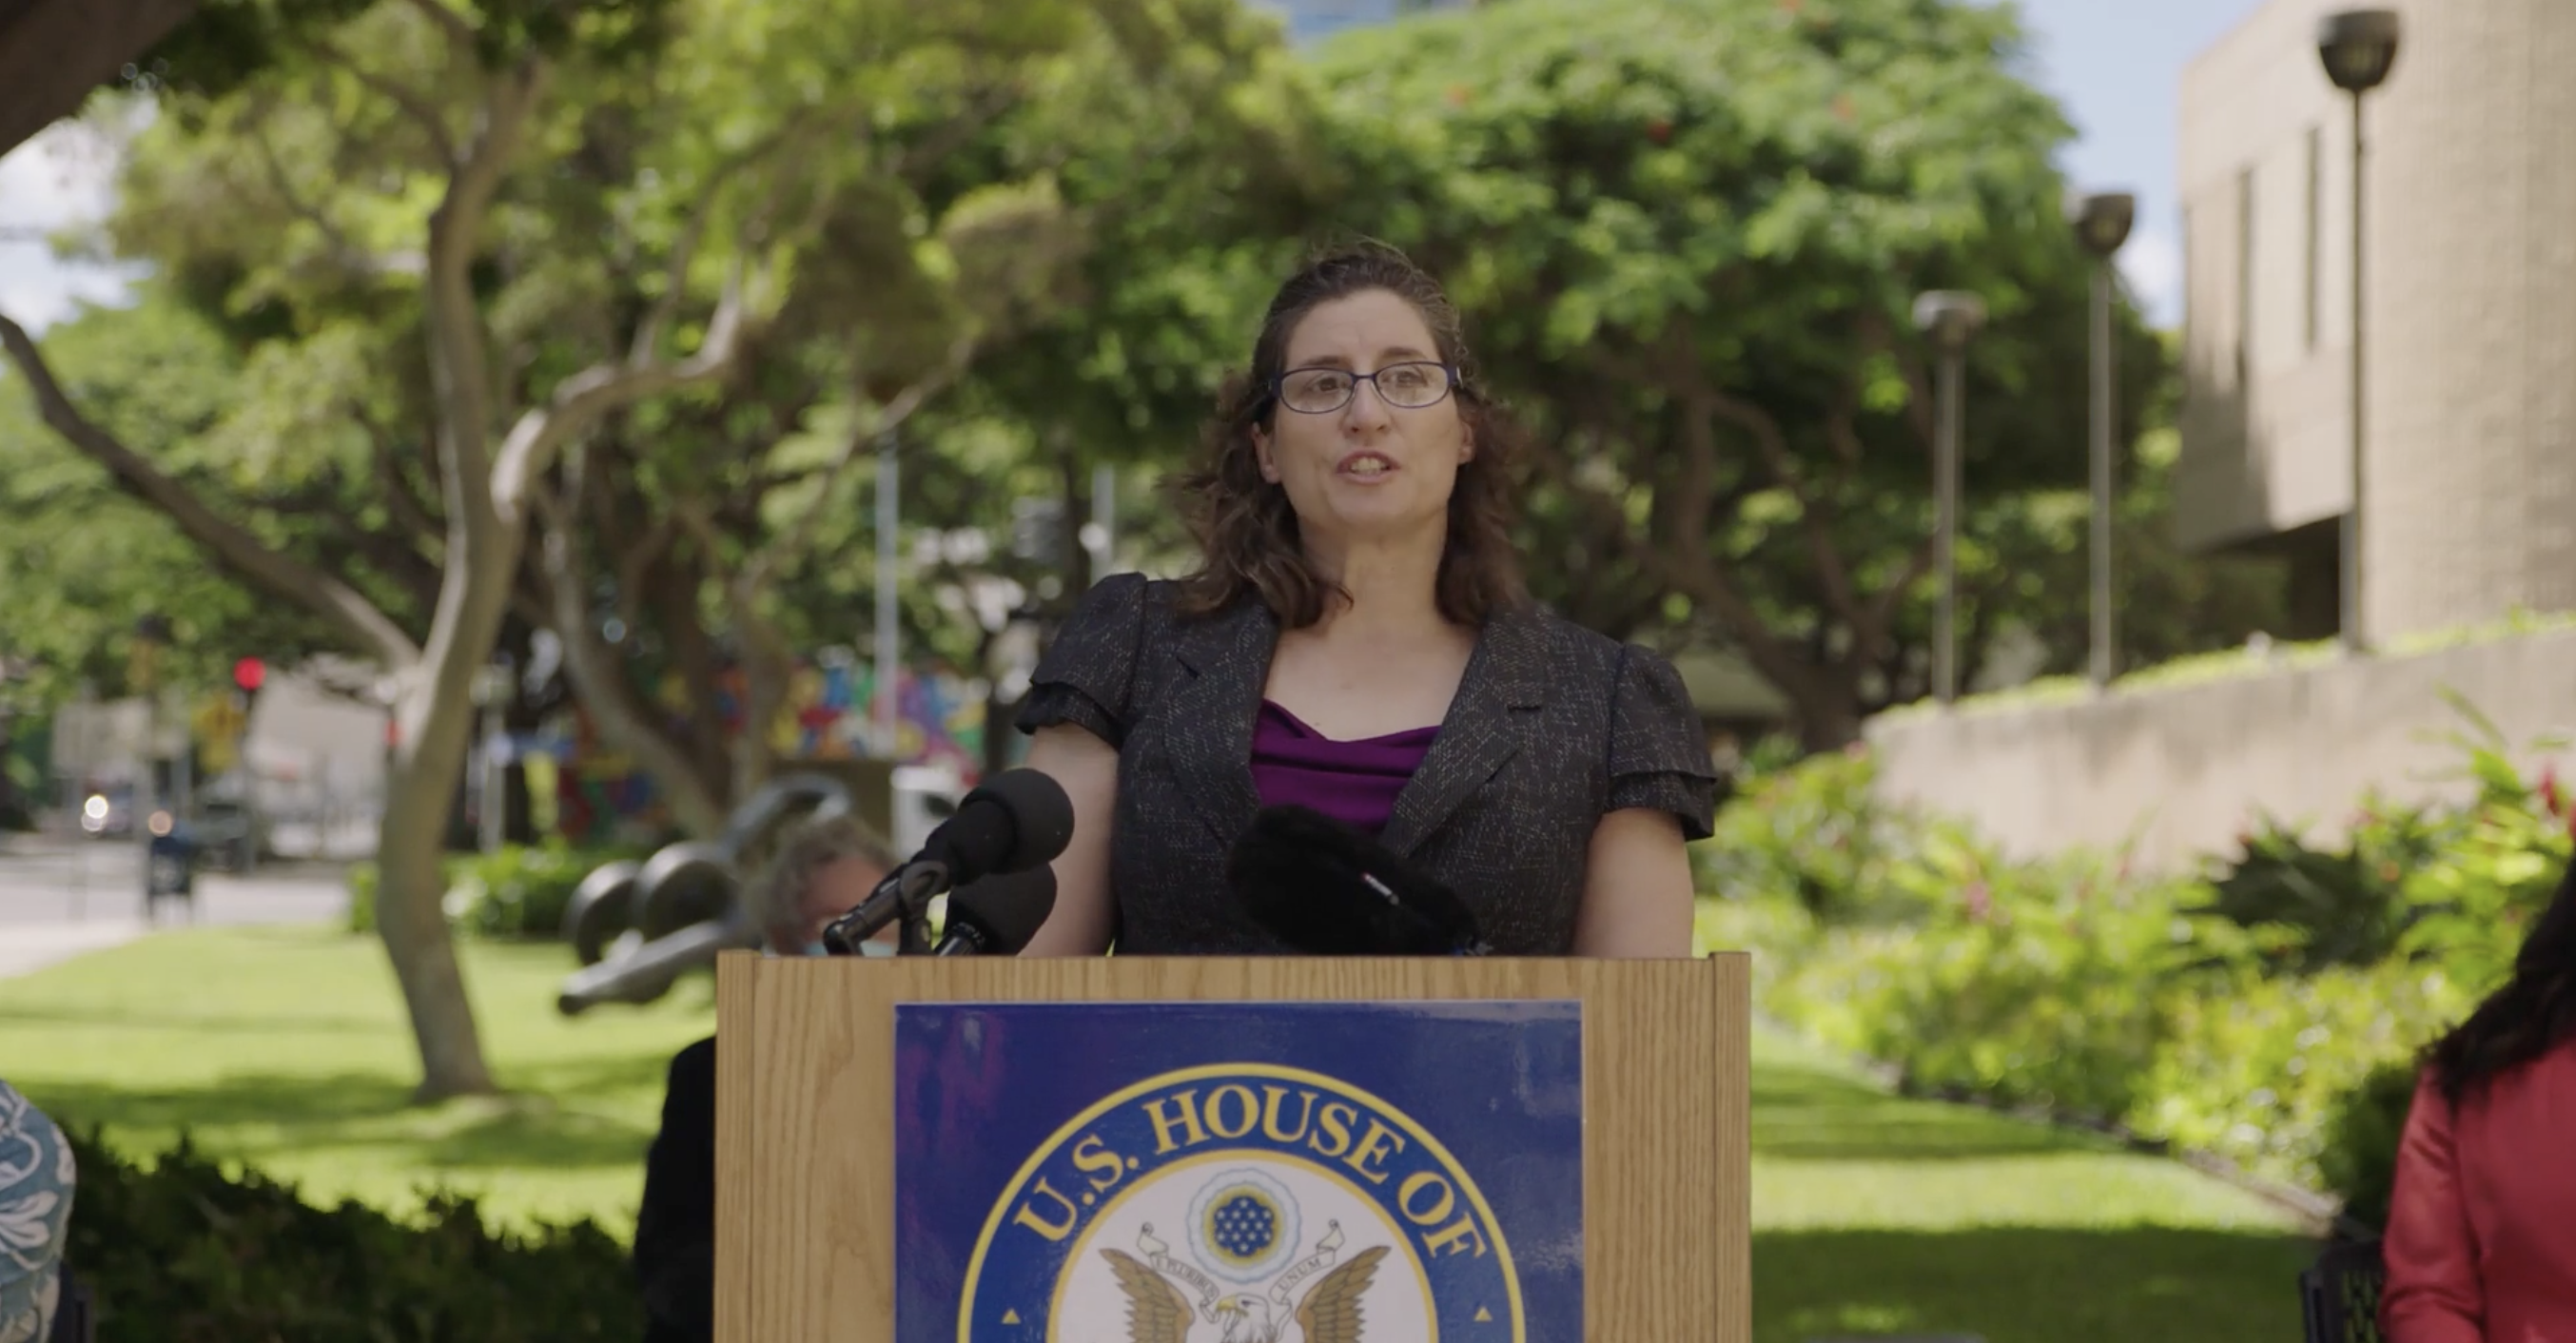 Rep. Gabbard and Whistleblower Call For Immediate Action in Hawai'i Contact Tracing